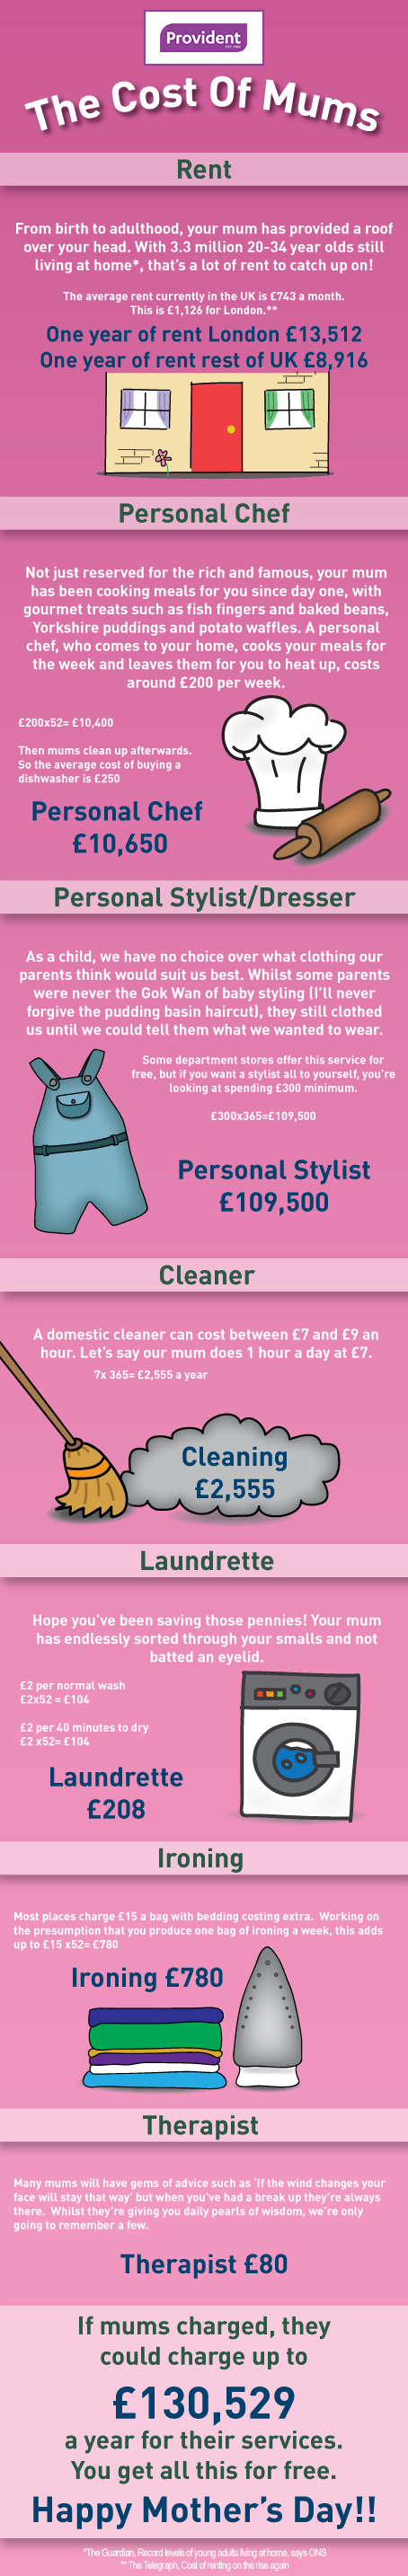 infographic detailing how much mums would cost if we paid them